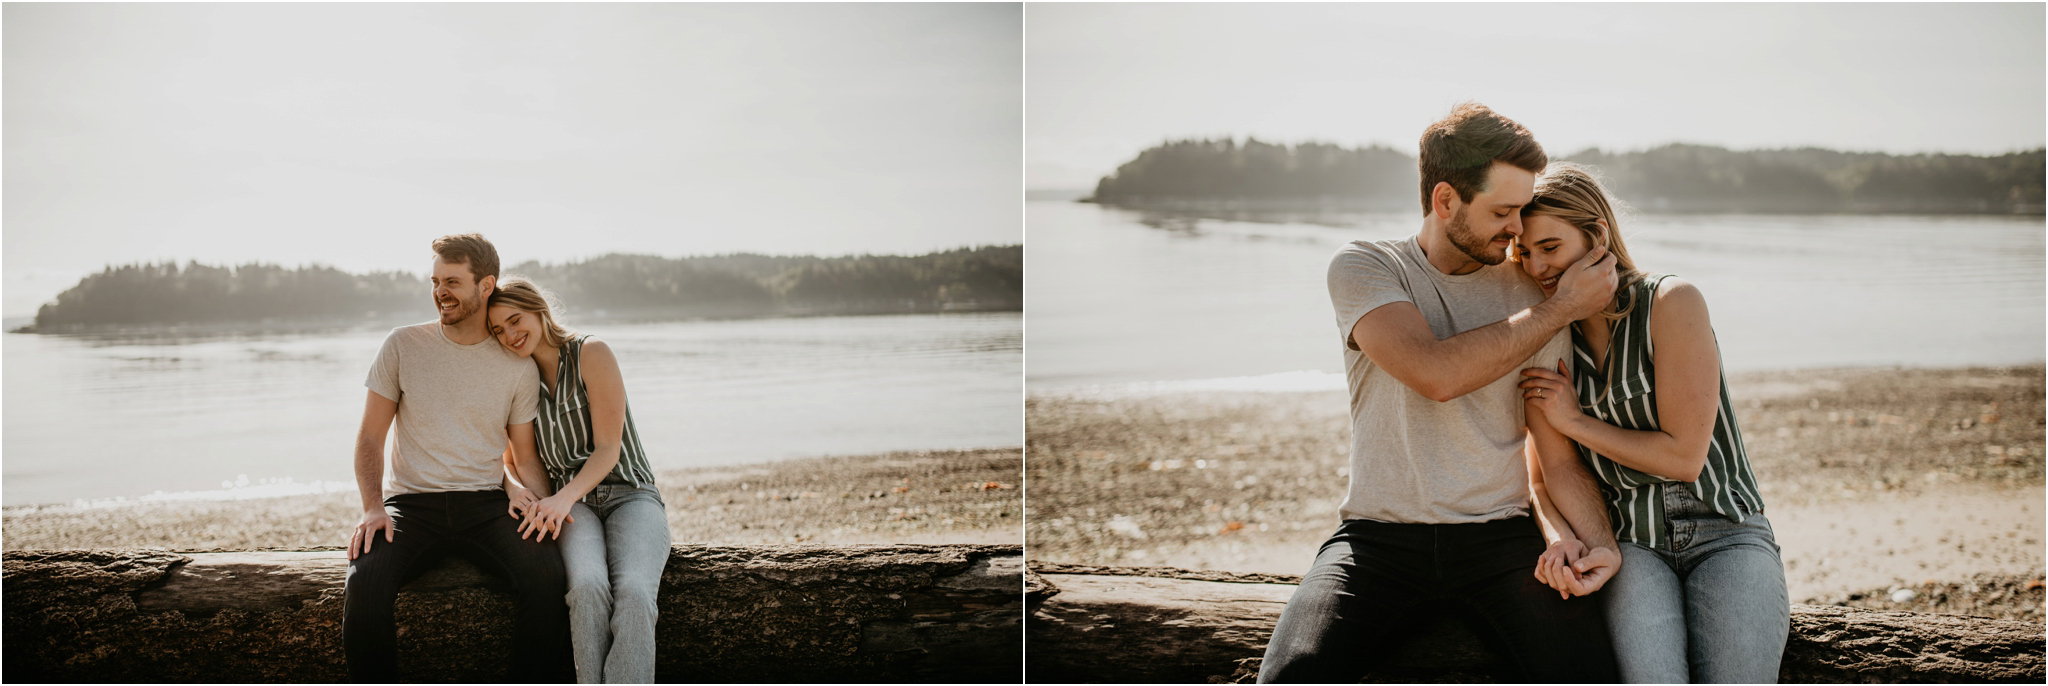 rile-and-ryan-fauntleroy-ferry-vashon-island-seattle-engagement-session-022.jpg